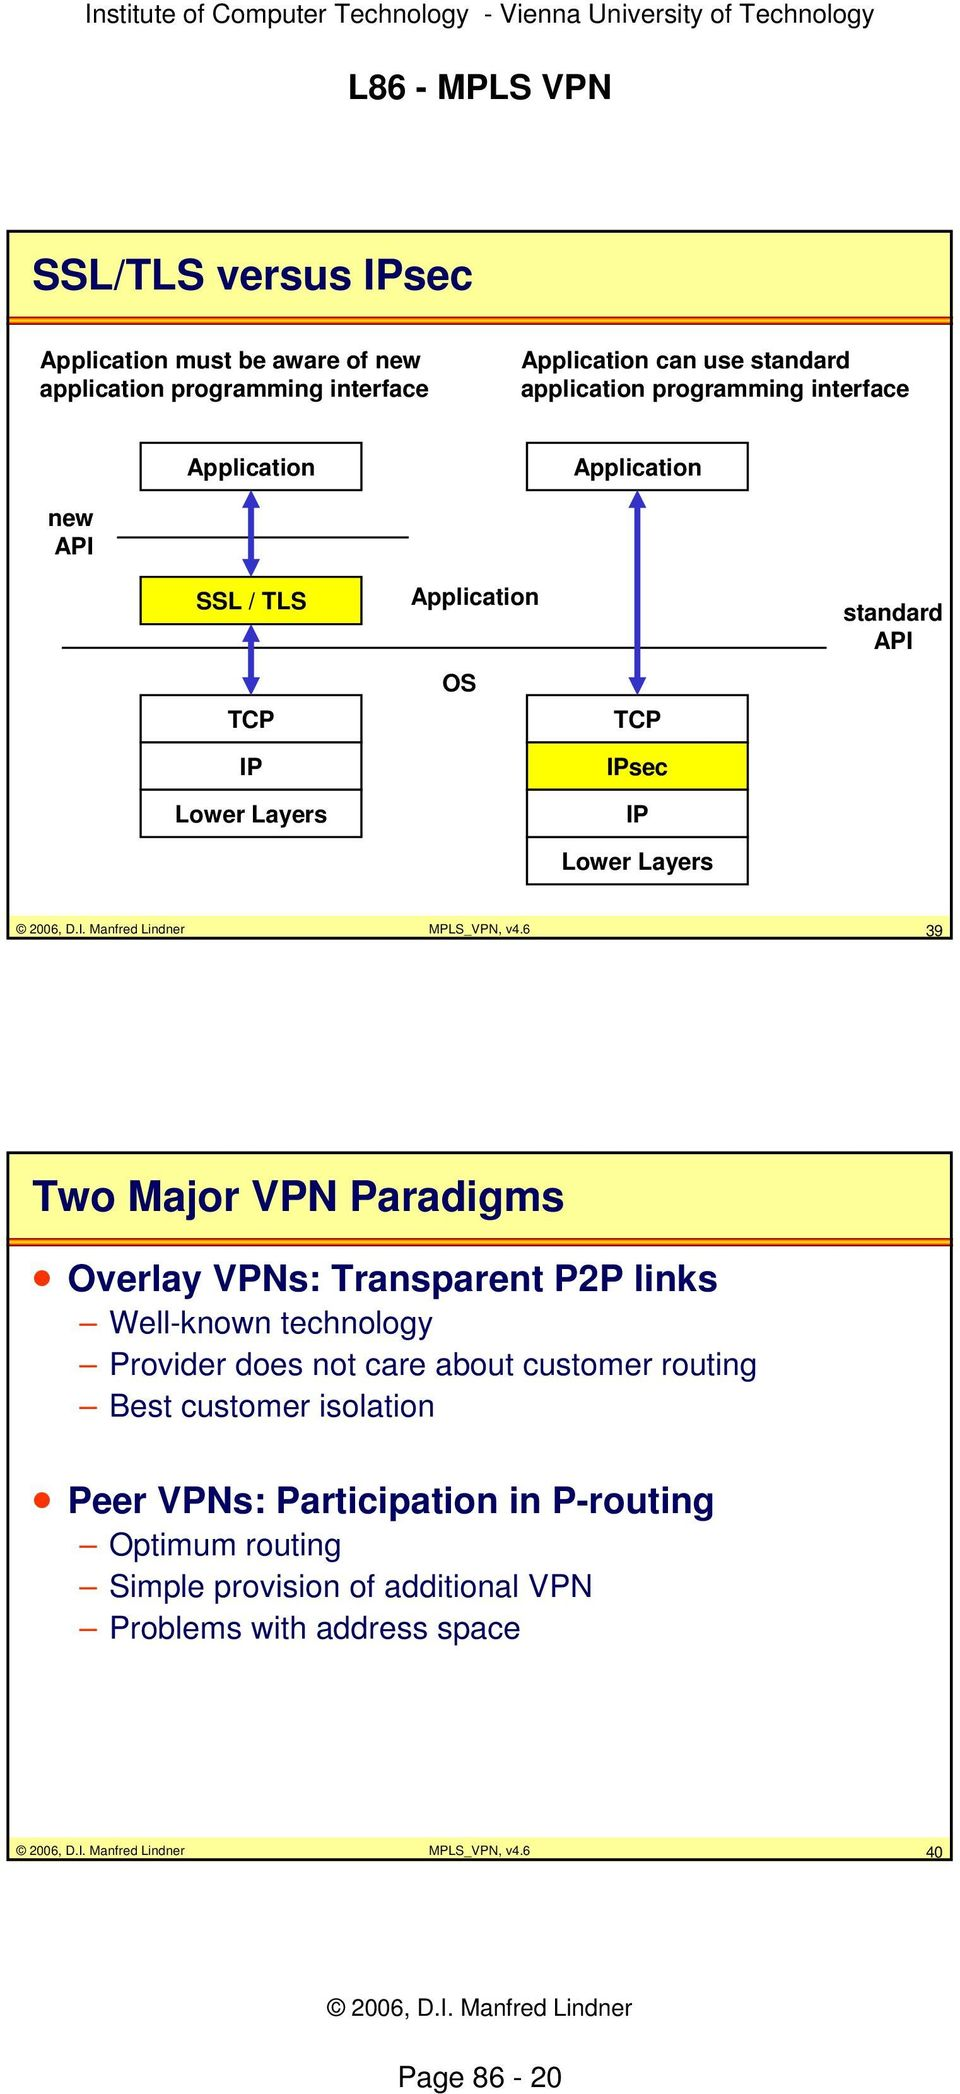 6 39 Two Major VPN Paradigms Overlay VPNs: Transparent P2P links Well-known technology Provider does not care about customer routing Best